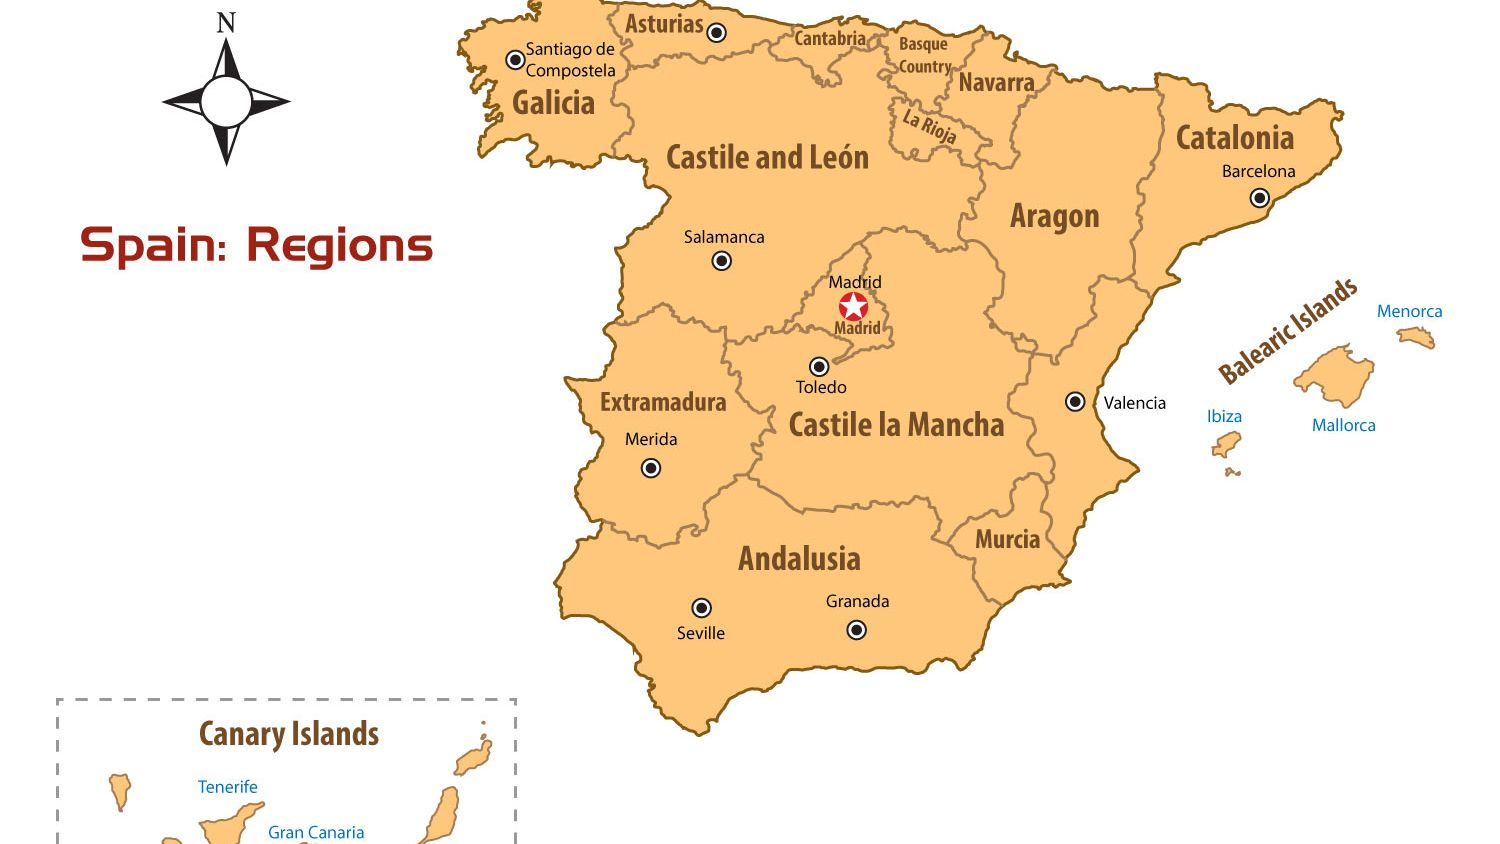 Map Of Spain Basque Region.Regions Of Spain Map And Guide